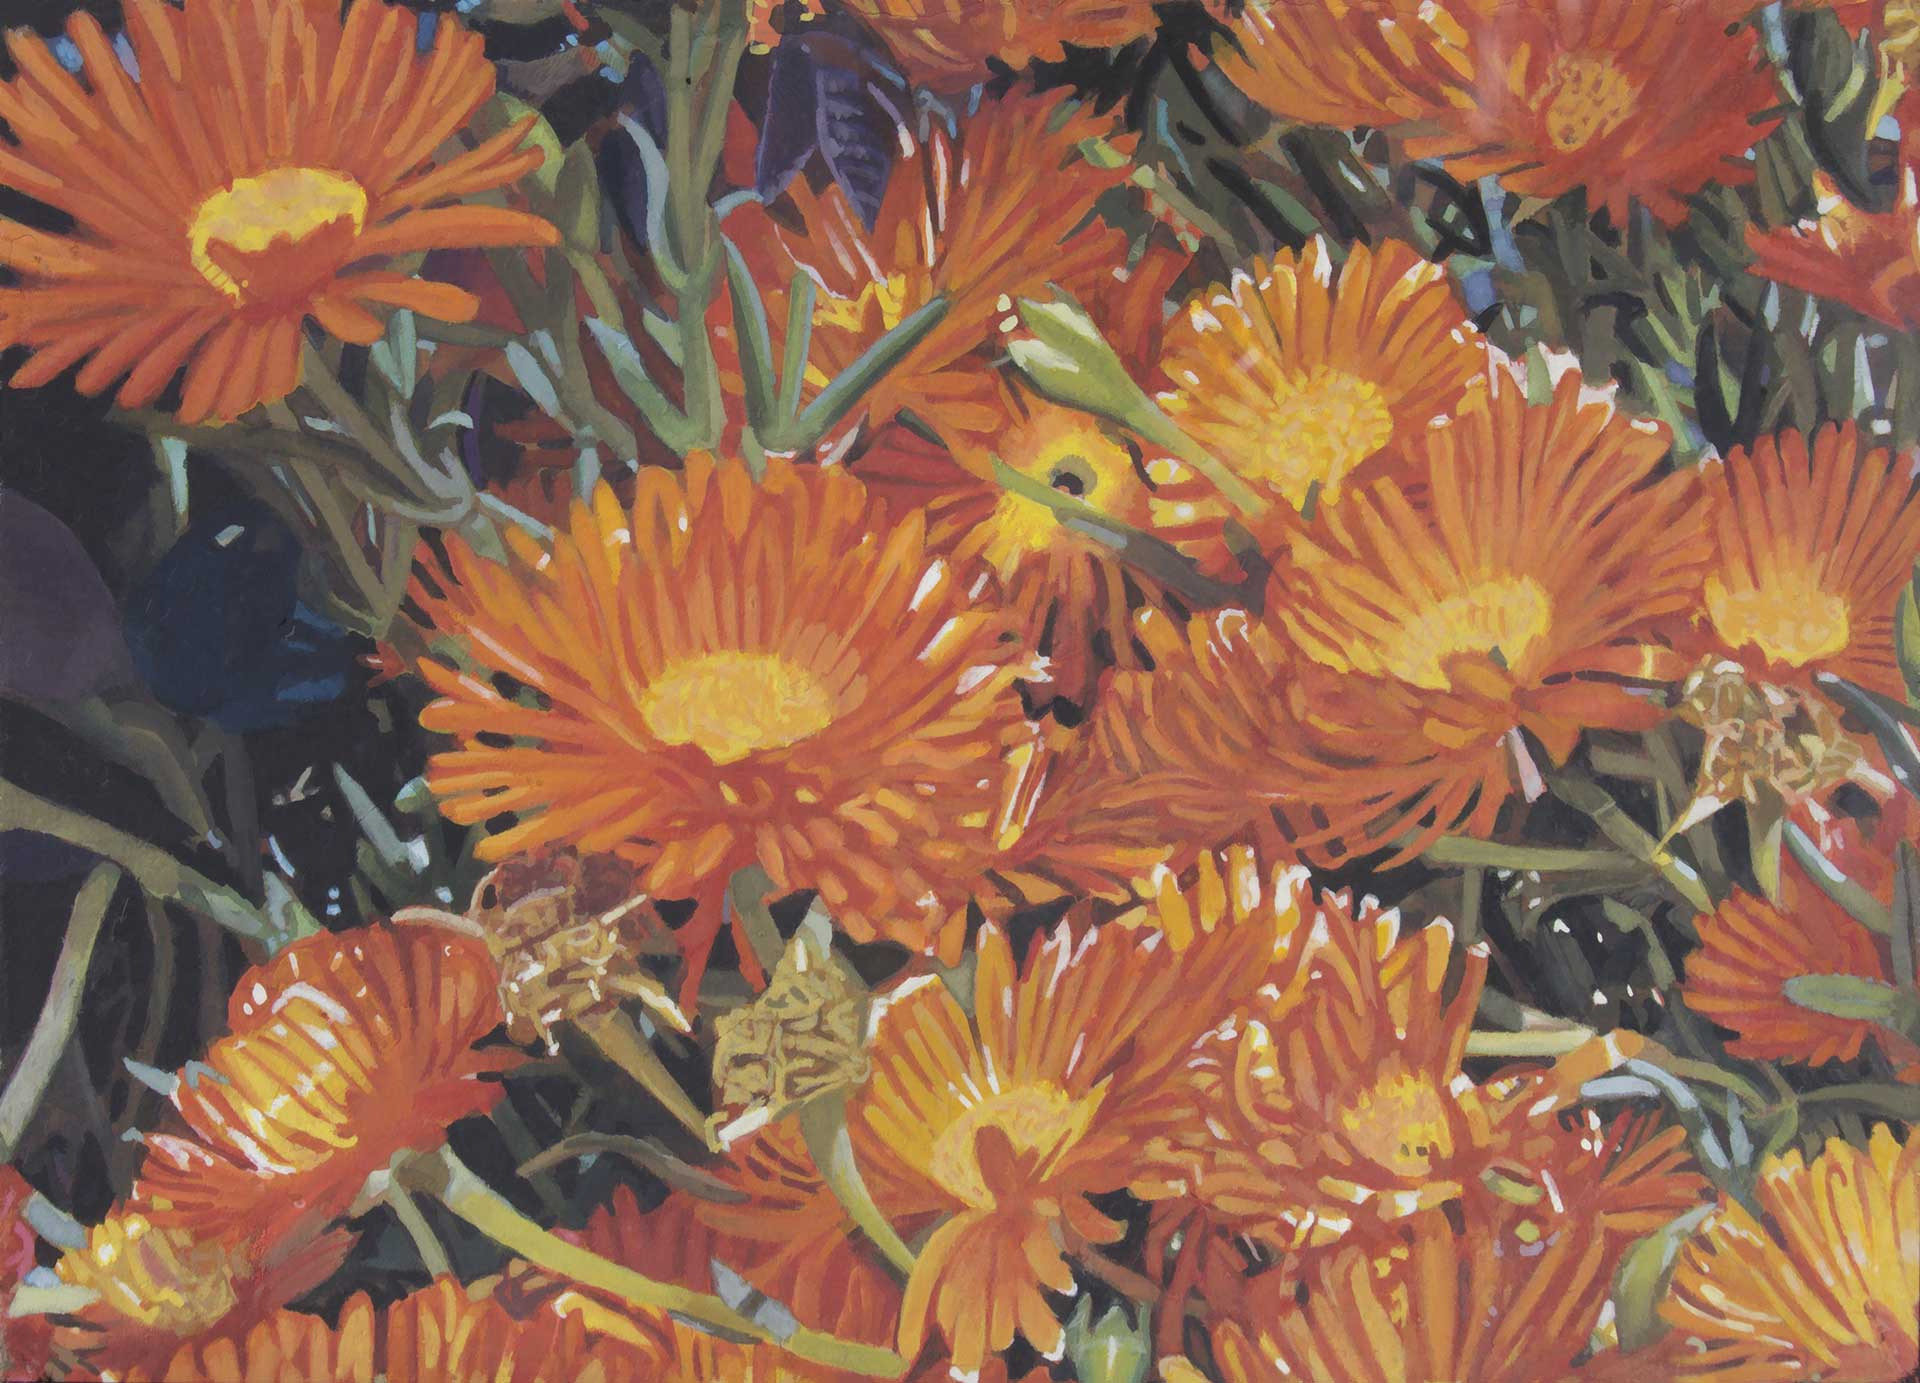 Photorealist painting - Orange Flowers